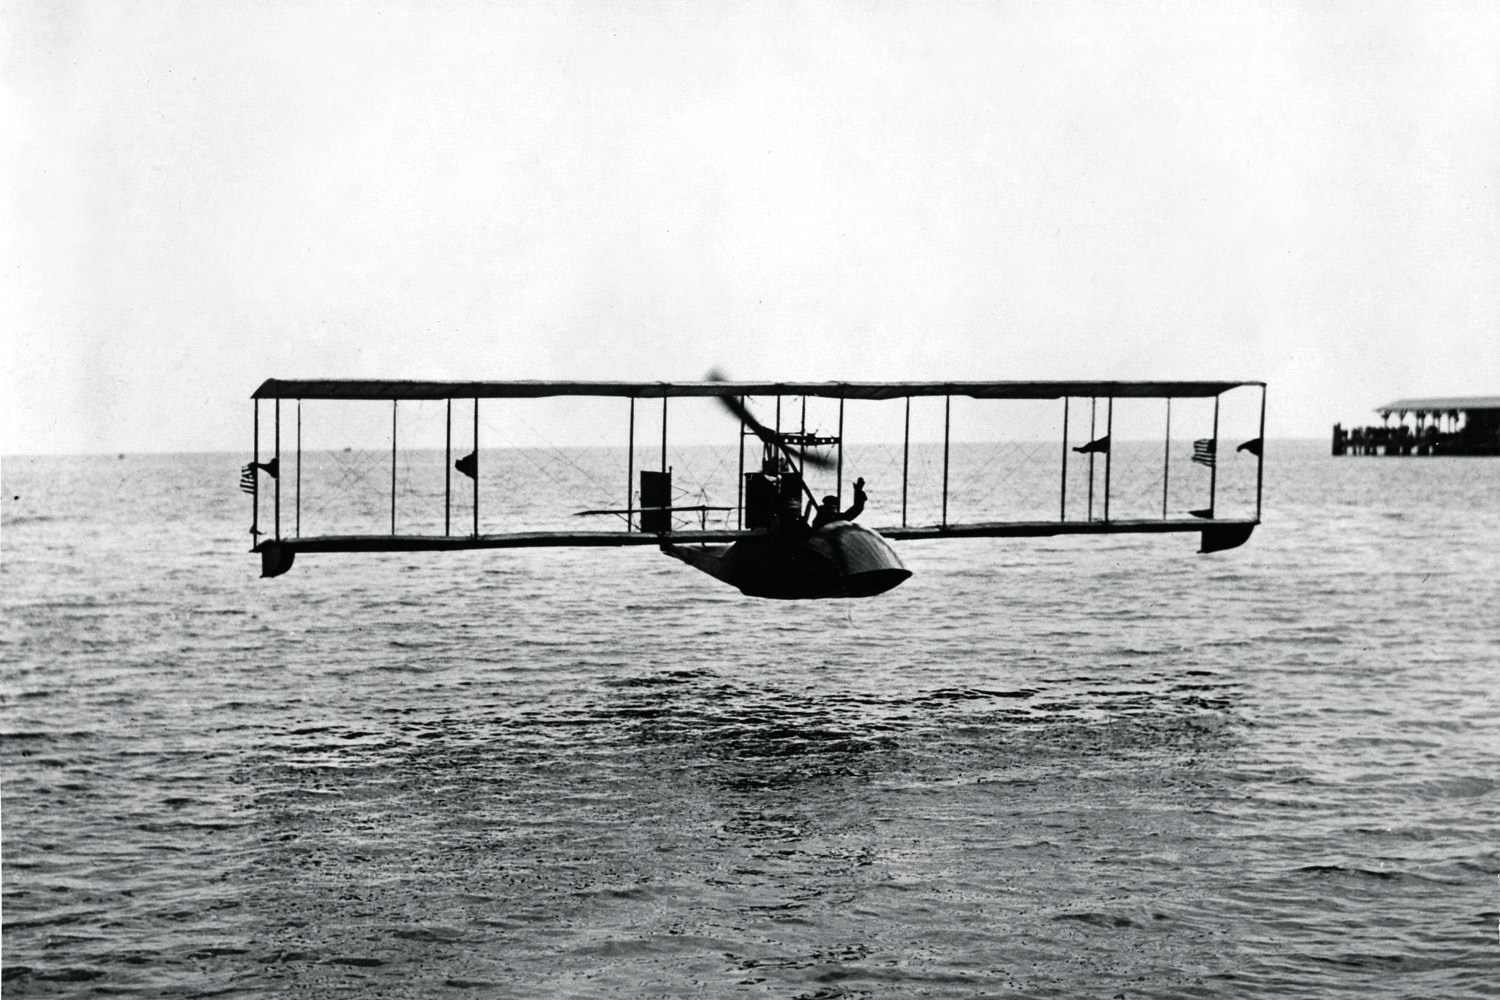 The first commercial flight in history took place across Florida's Tampa Bay on Jan. 1, 1914—and the ticket cost $400